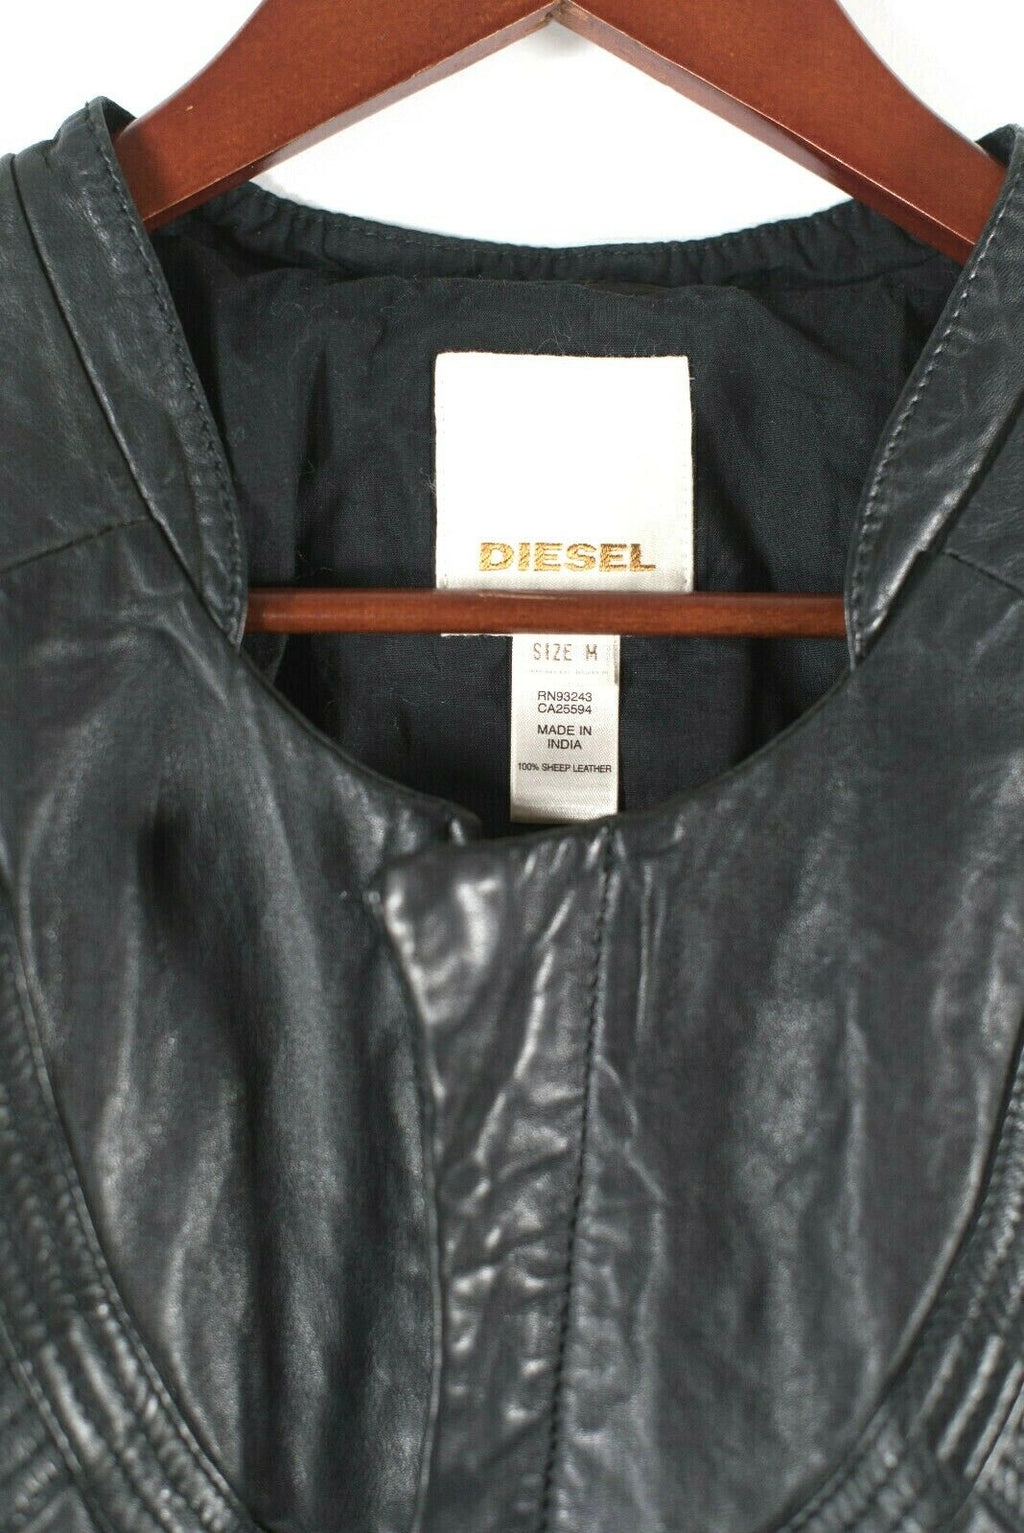 Diesel Womens Medium Black Moto Jacket Soft Leather Diamond Quilted Zipper Front